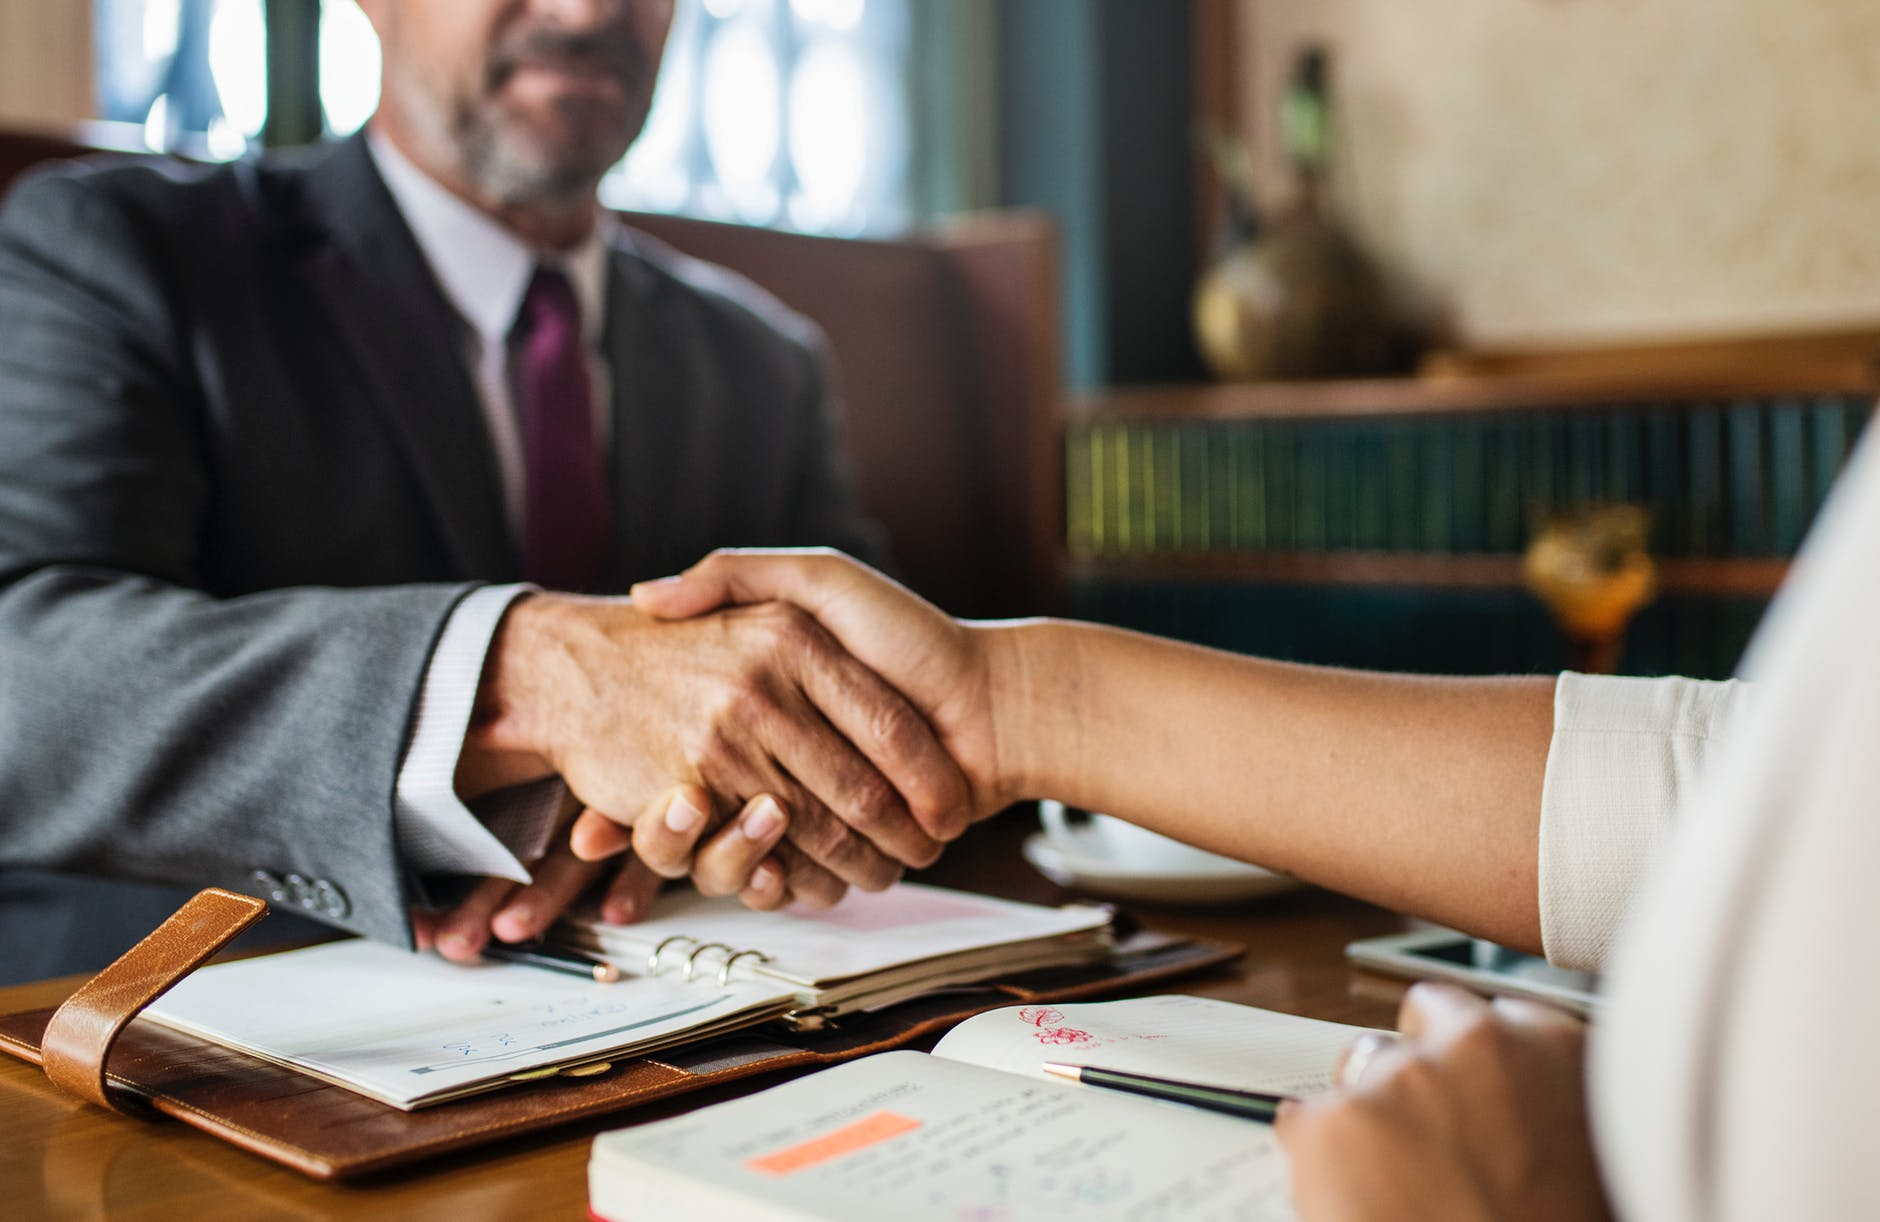 Situations That Might Call for Hiring a Family Lawyer